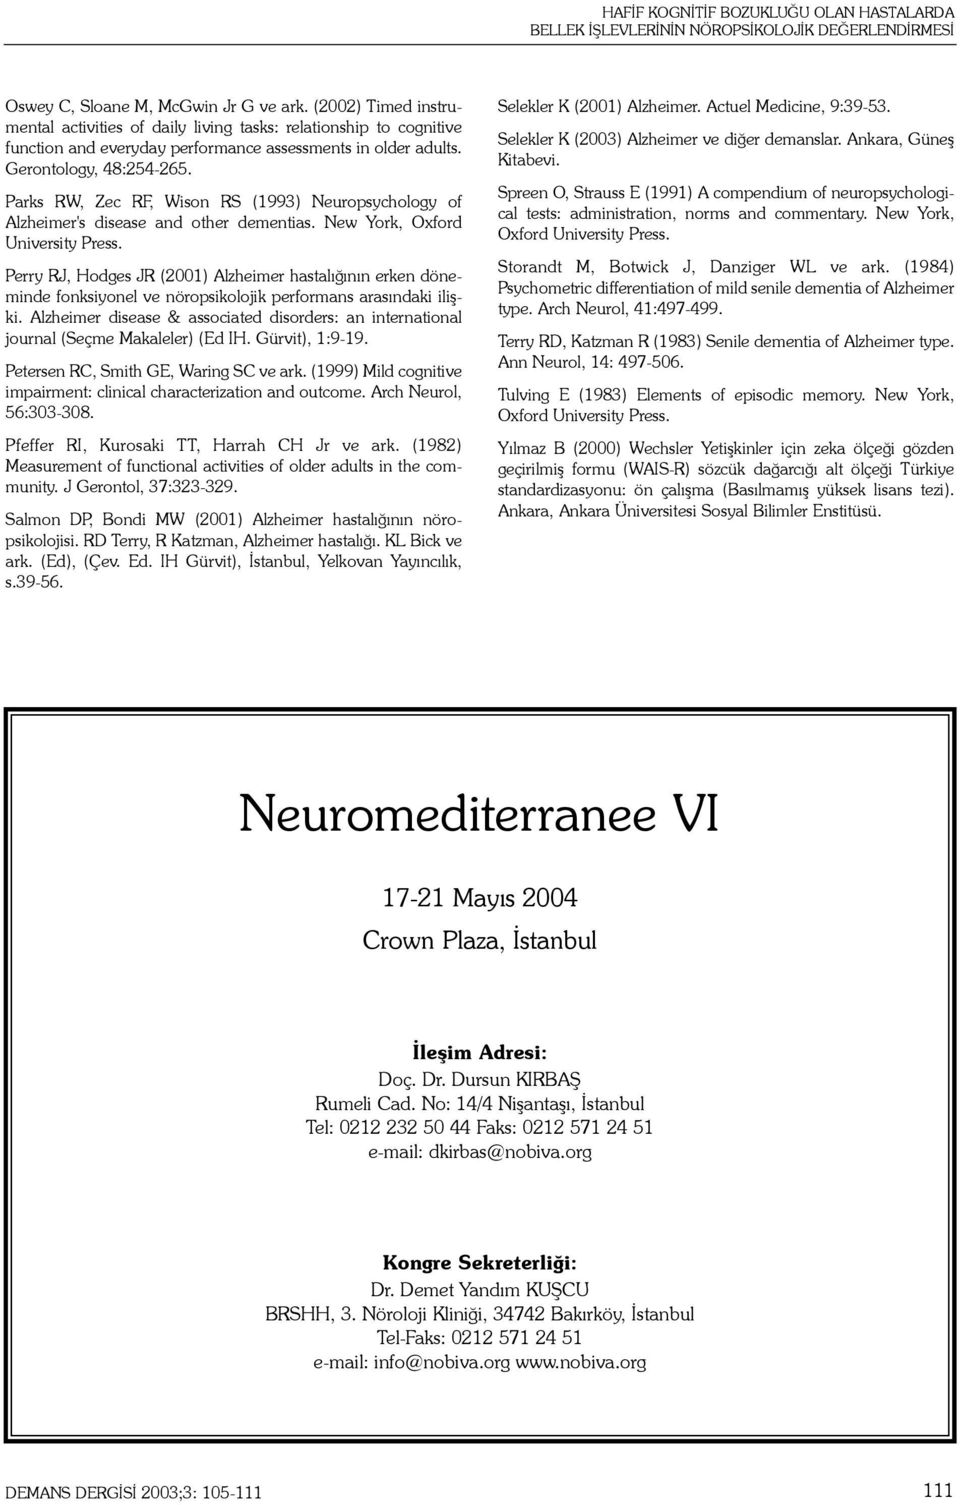 Parks RW, Zec RF, Wison RS (1993) Neuropsychology of Alzheimer's disease and other dementias. New York, Oxford University Press.